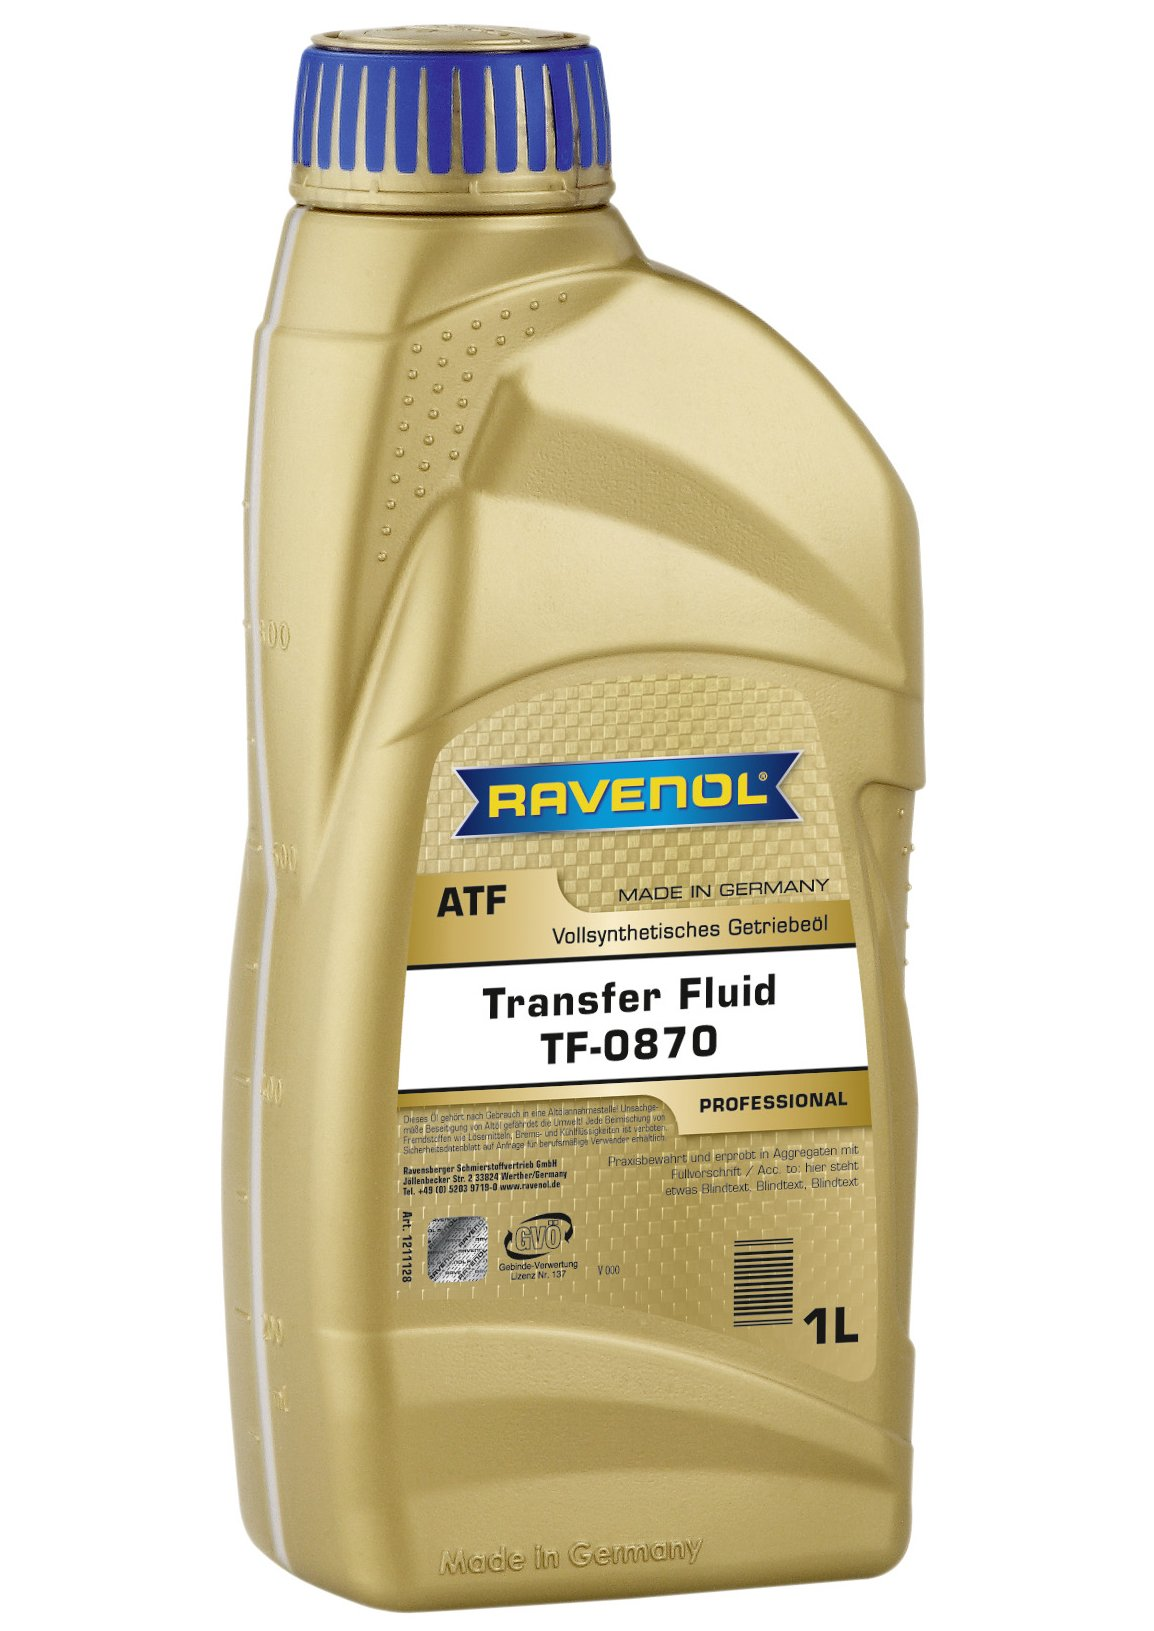 Ravenol J1C1125 Transfer Case Fluid TF-0870 - Full Synthetic (1 Liter)